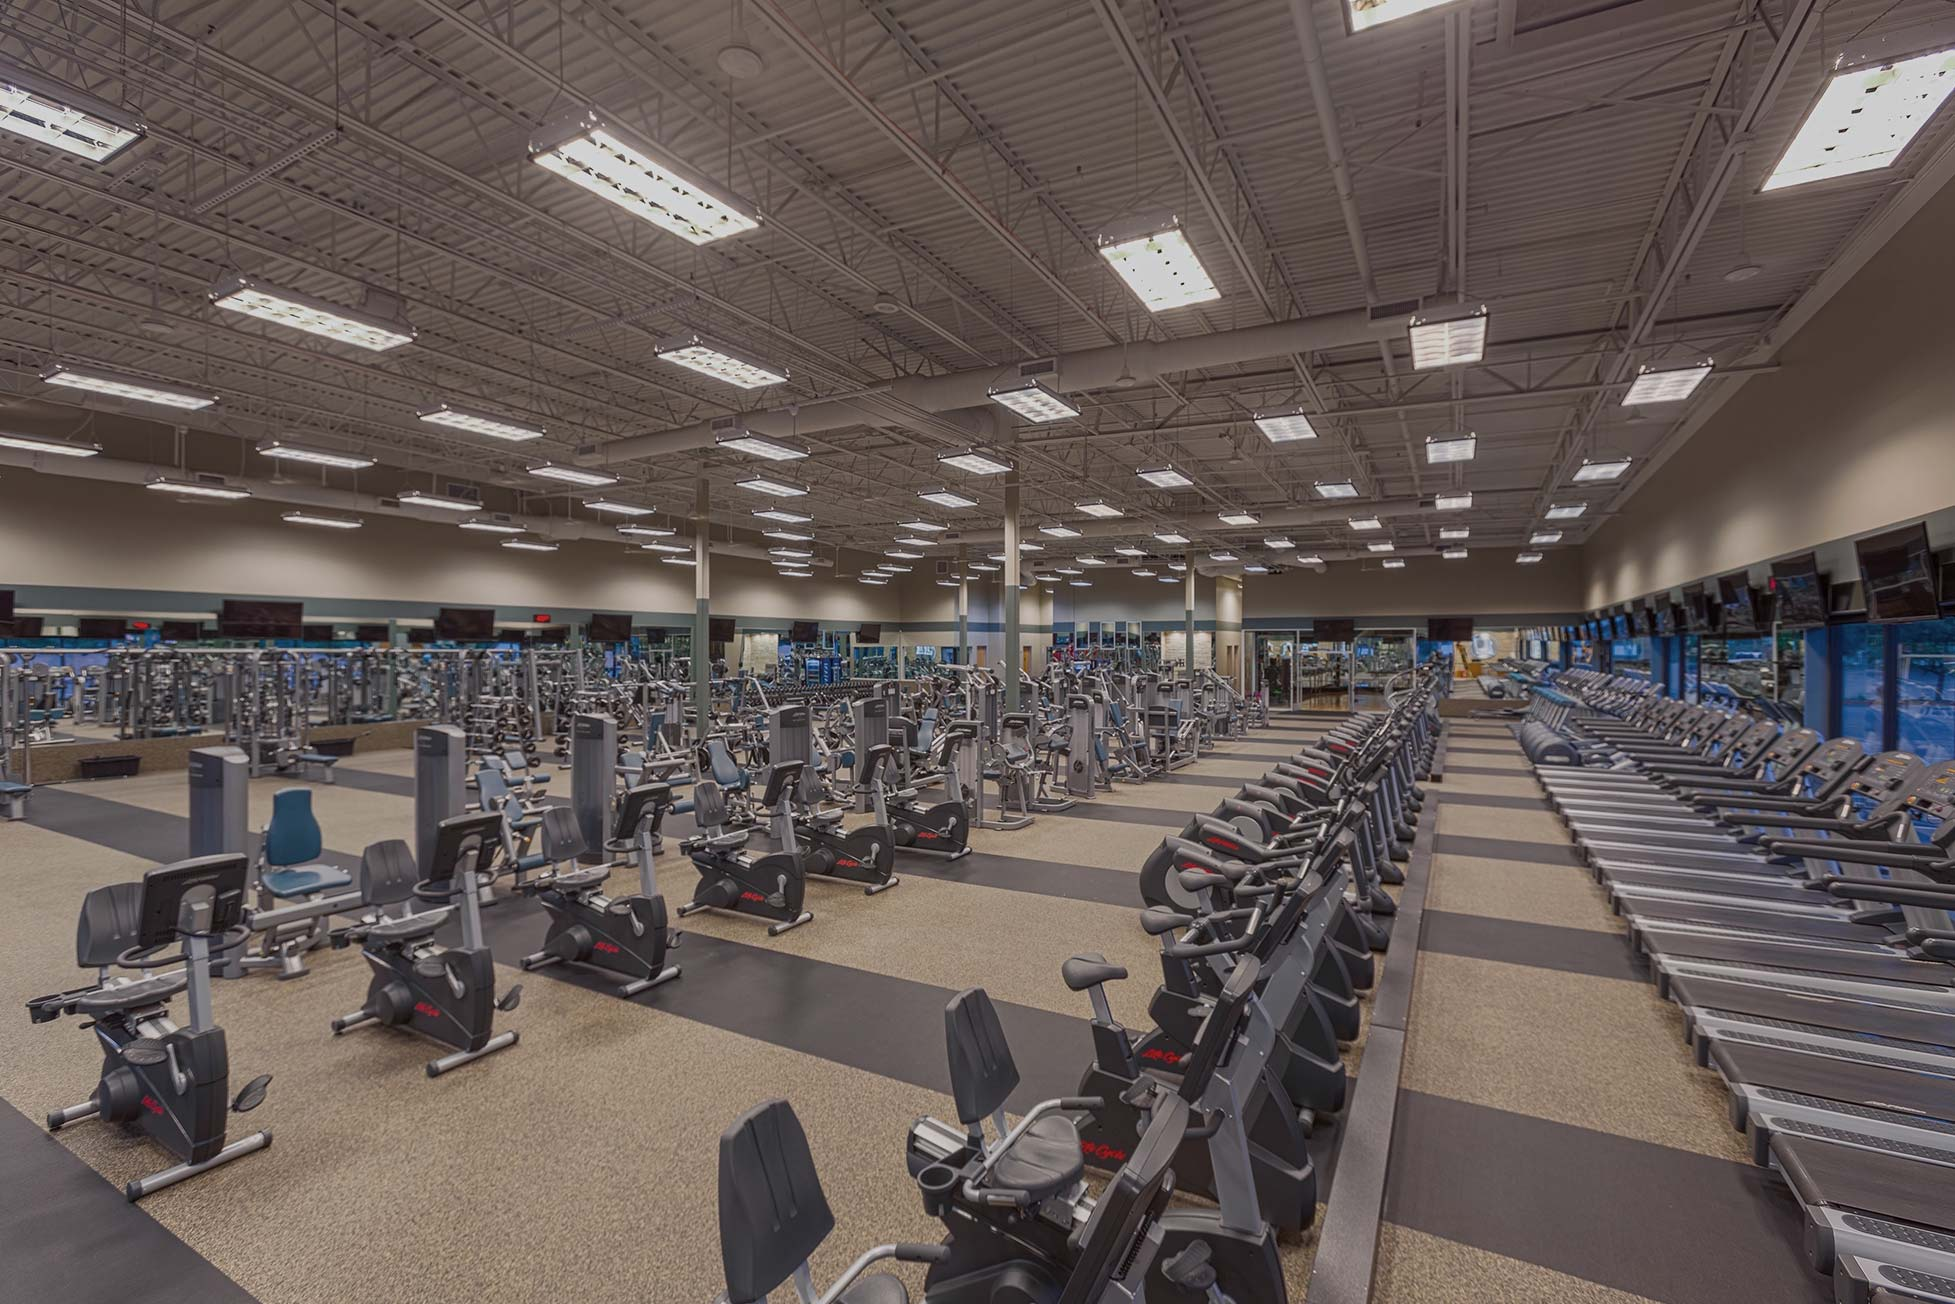 Fitness 19 Gyms Affordable Health Clubs Centers